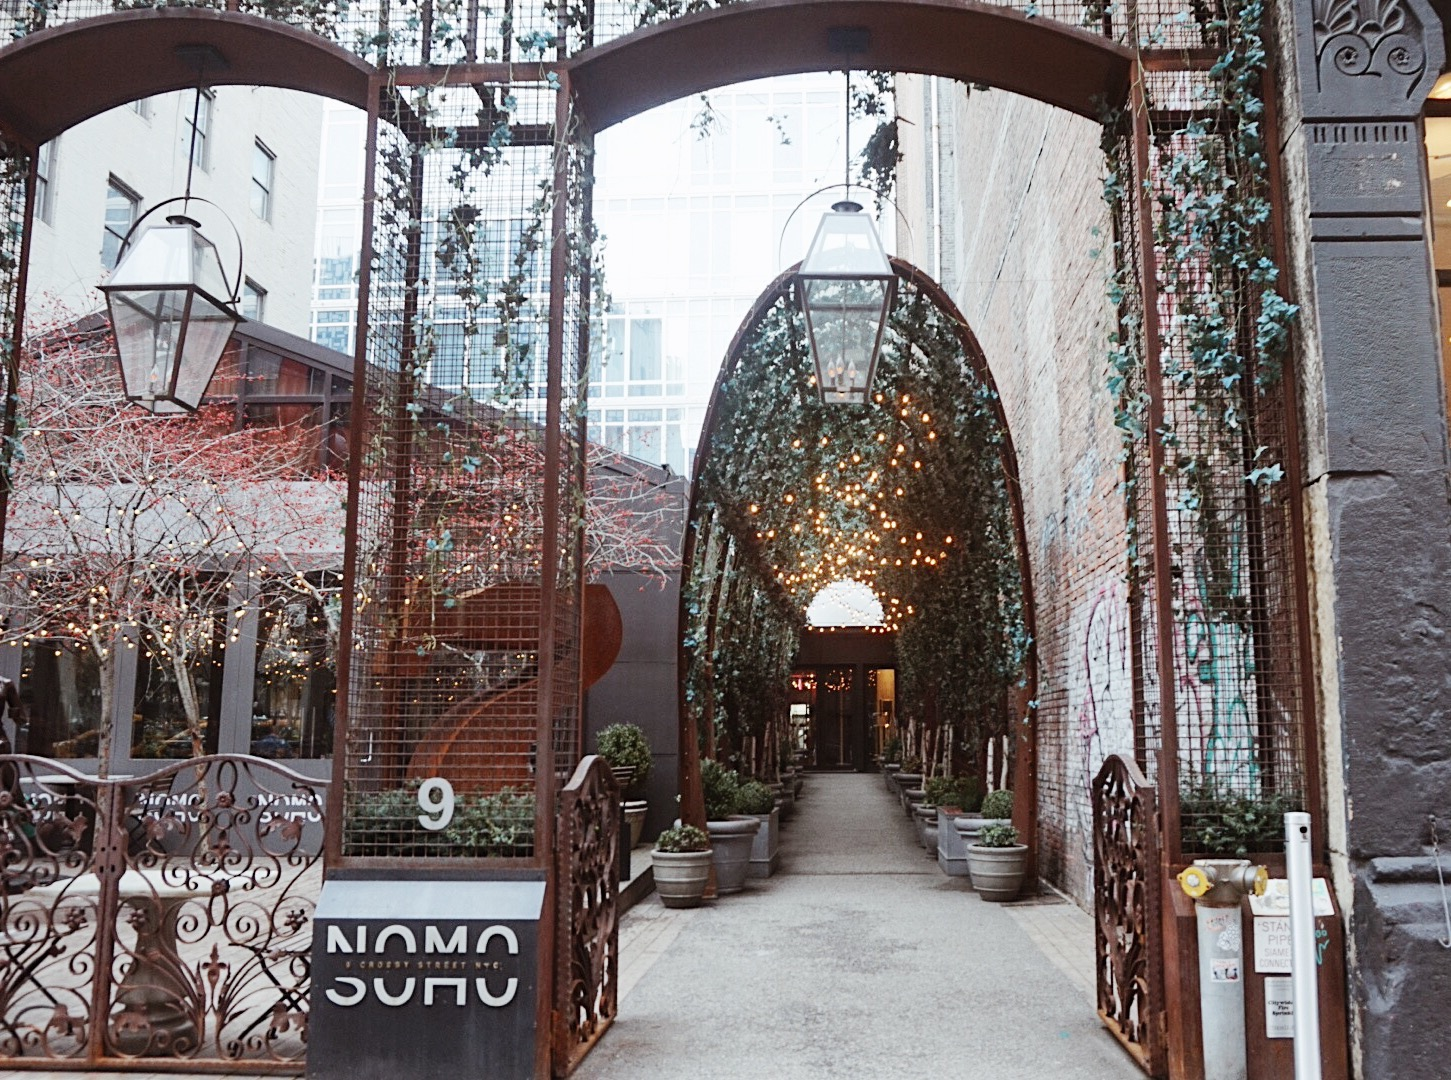 the front arch of the Nomo Soho in NYC